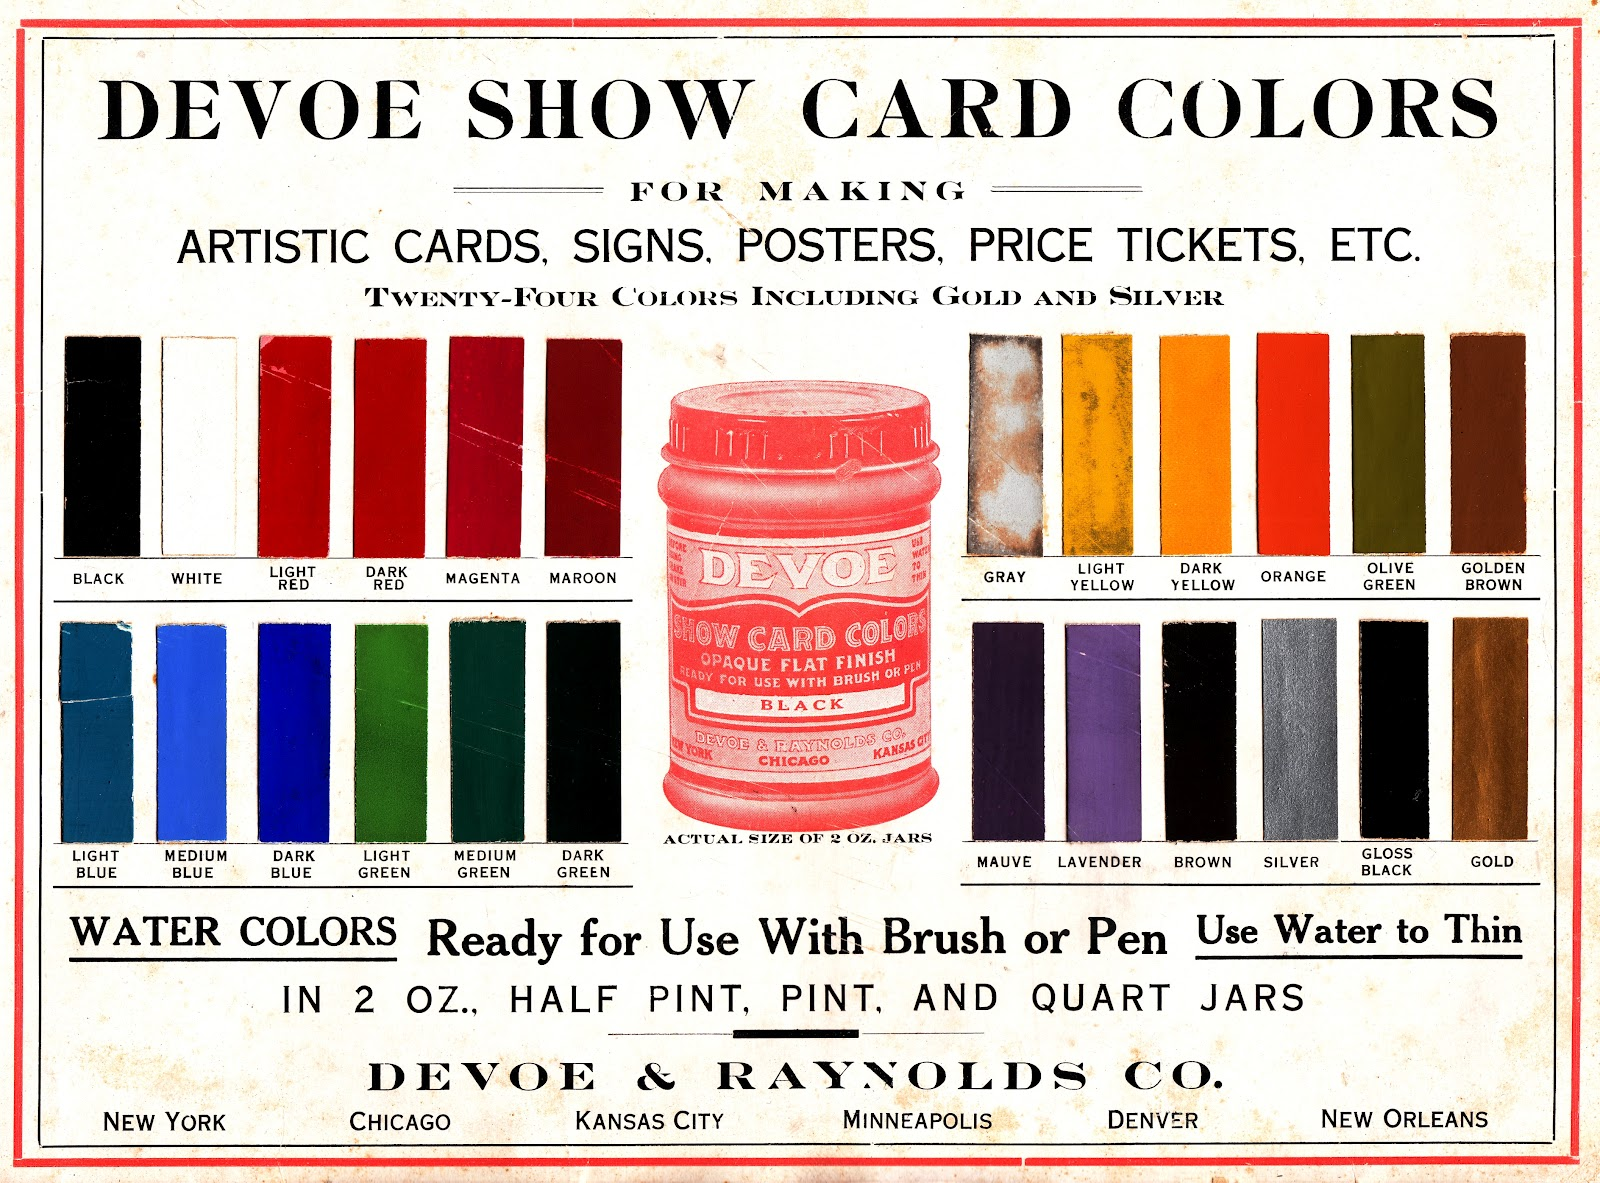 Dull tool dim bulb march 2012 show card colors devoe and raynolds the oldest company of paint nvjuhfo Images